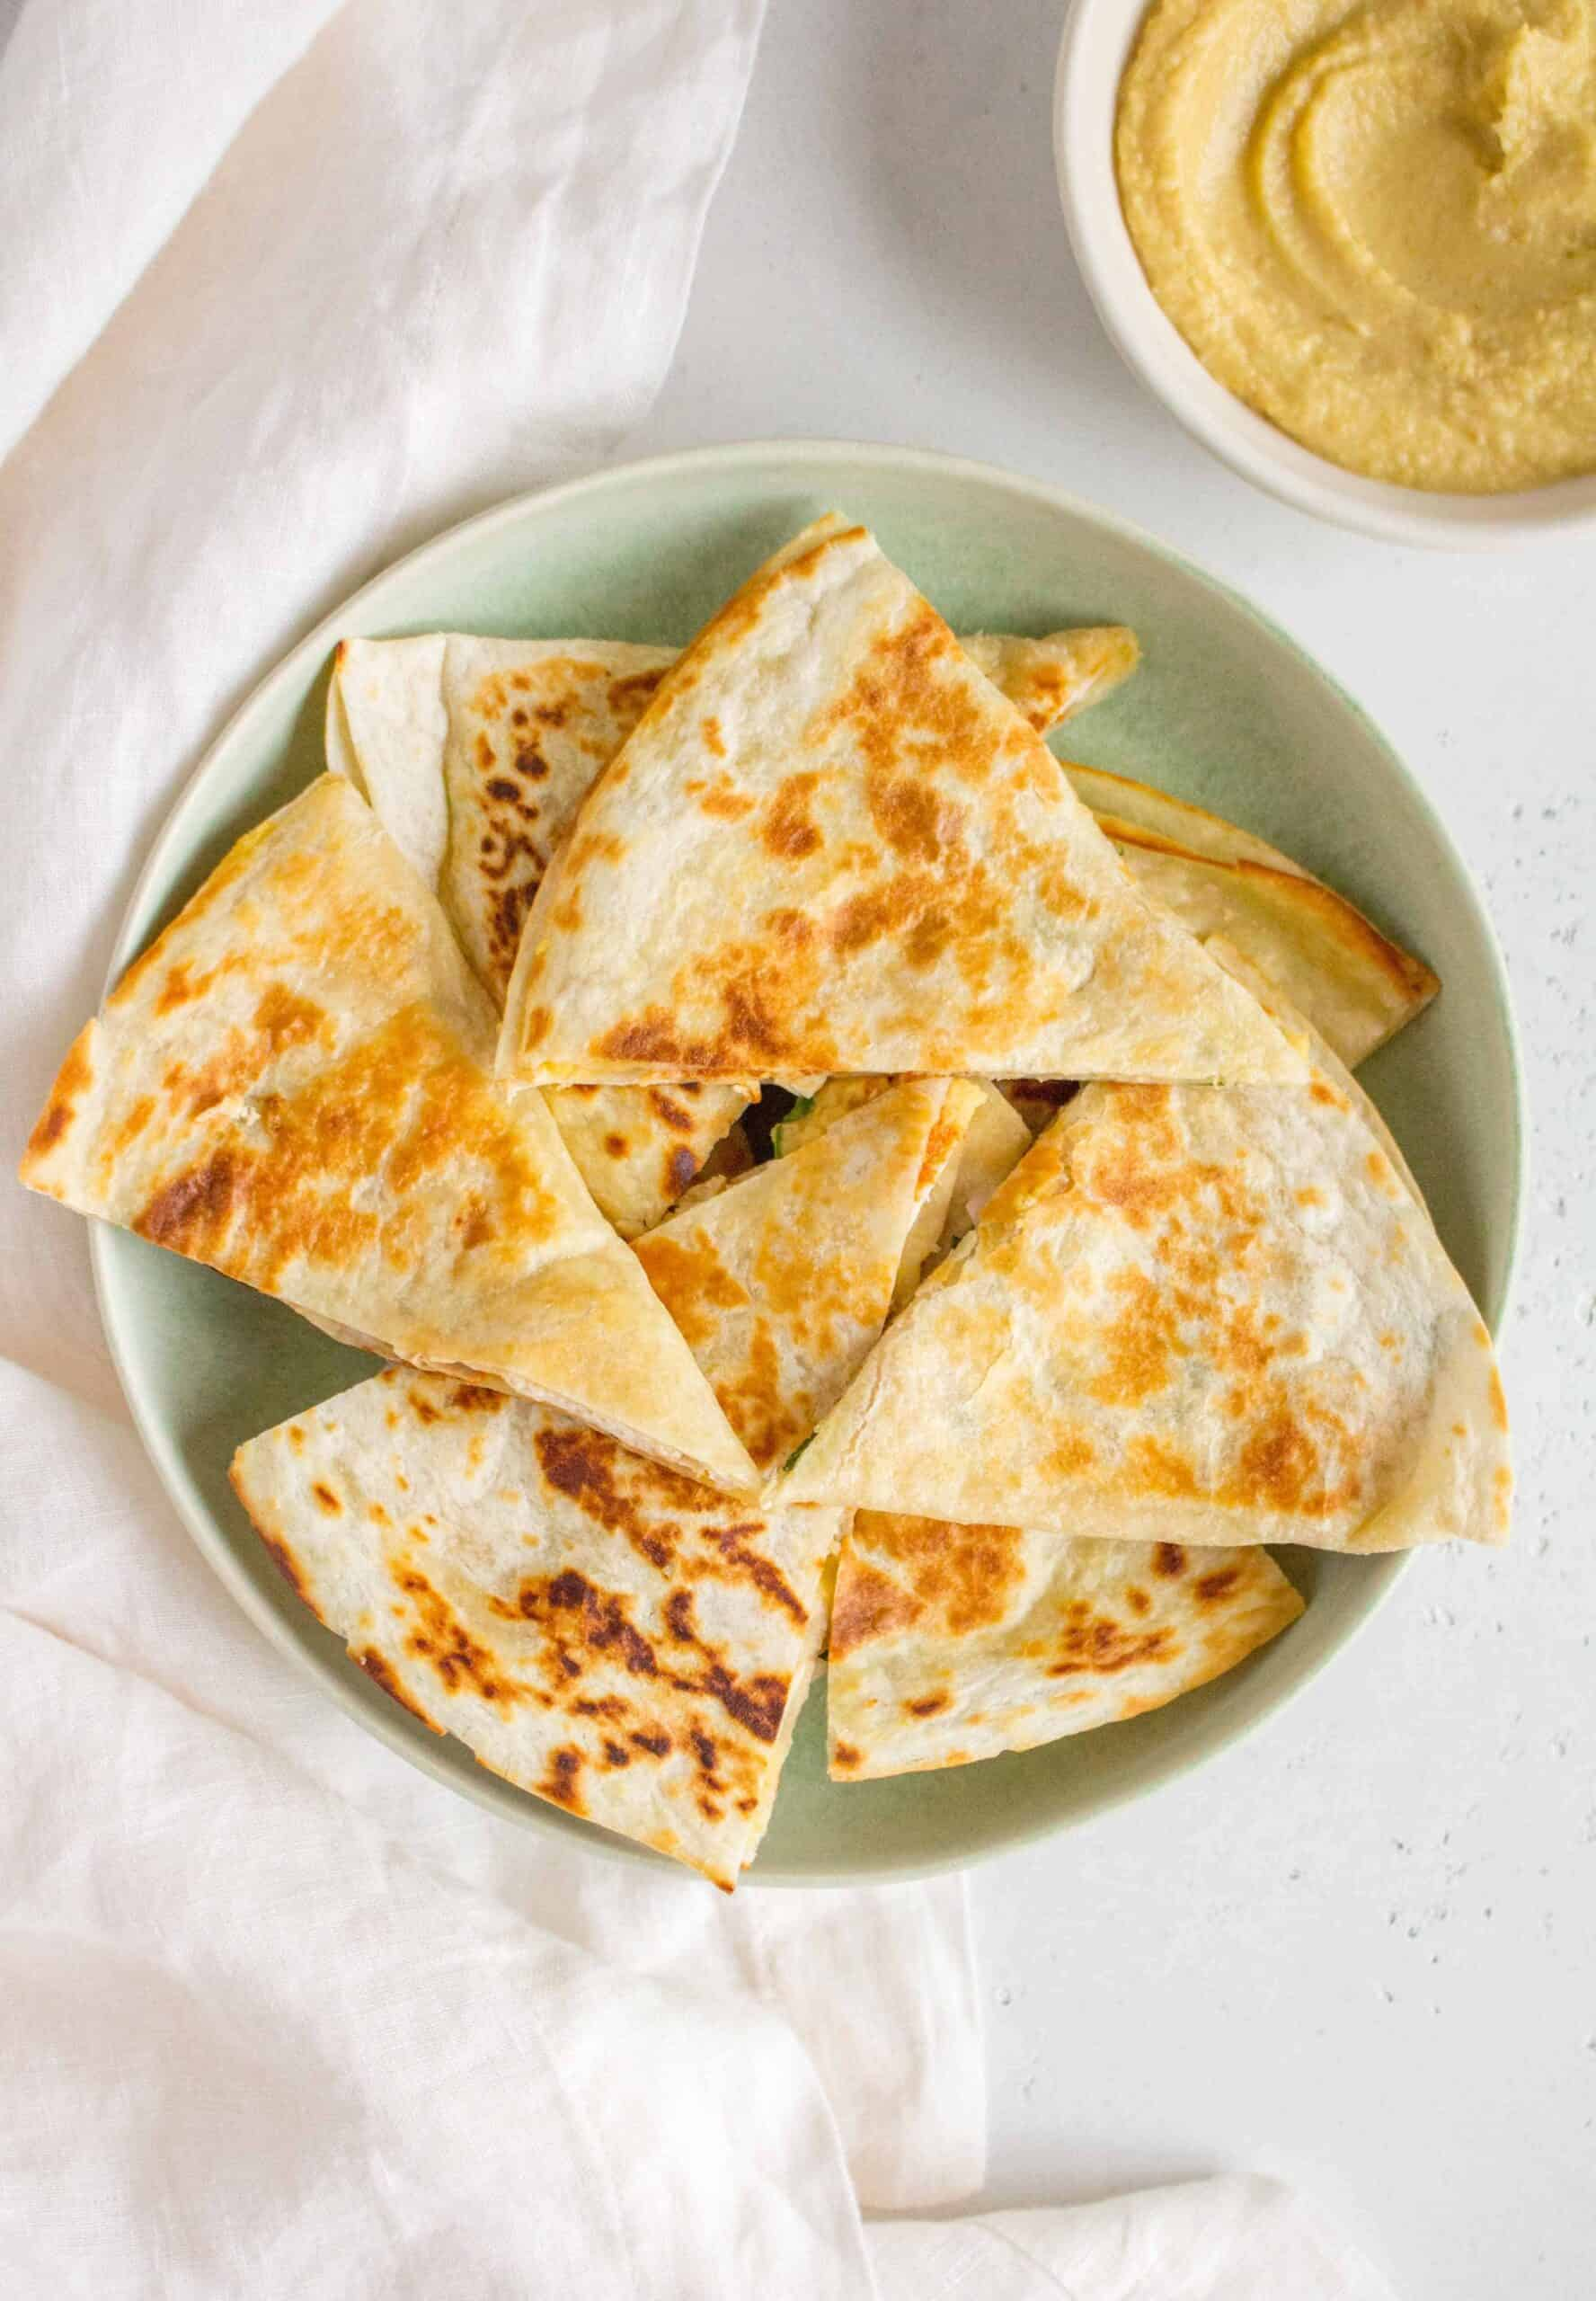 green plate with chicken and hummus quesadillas.